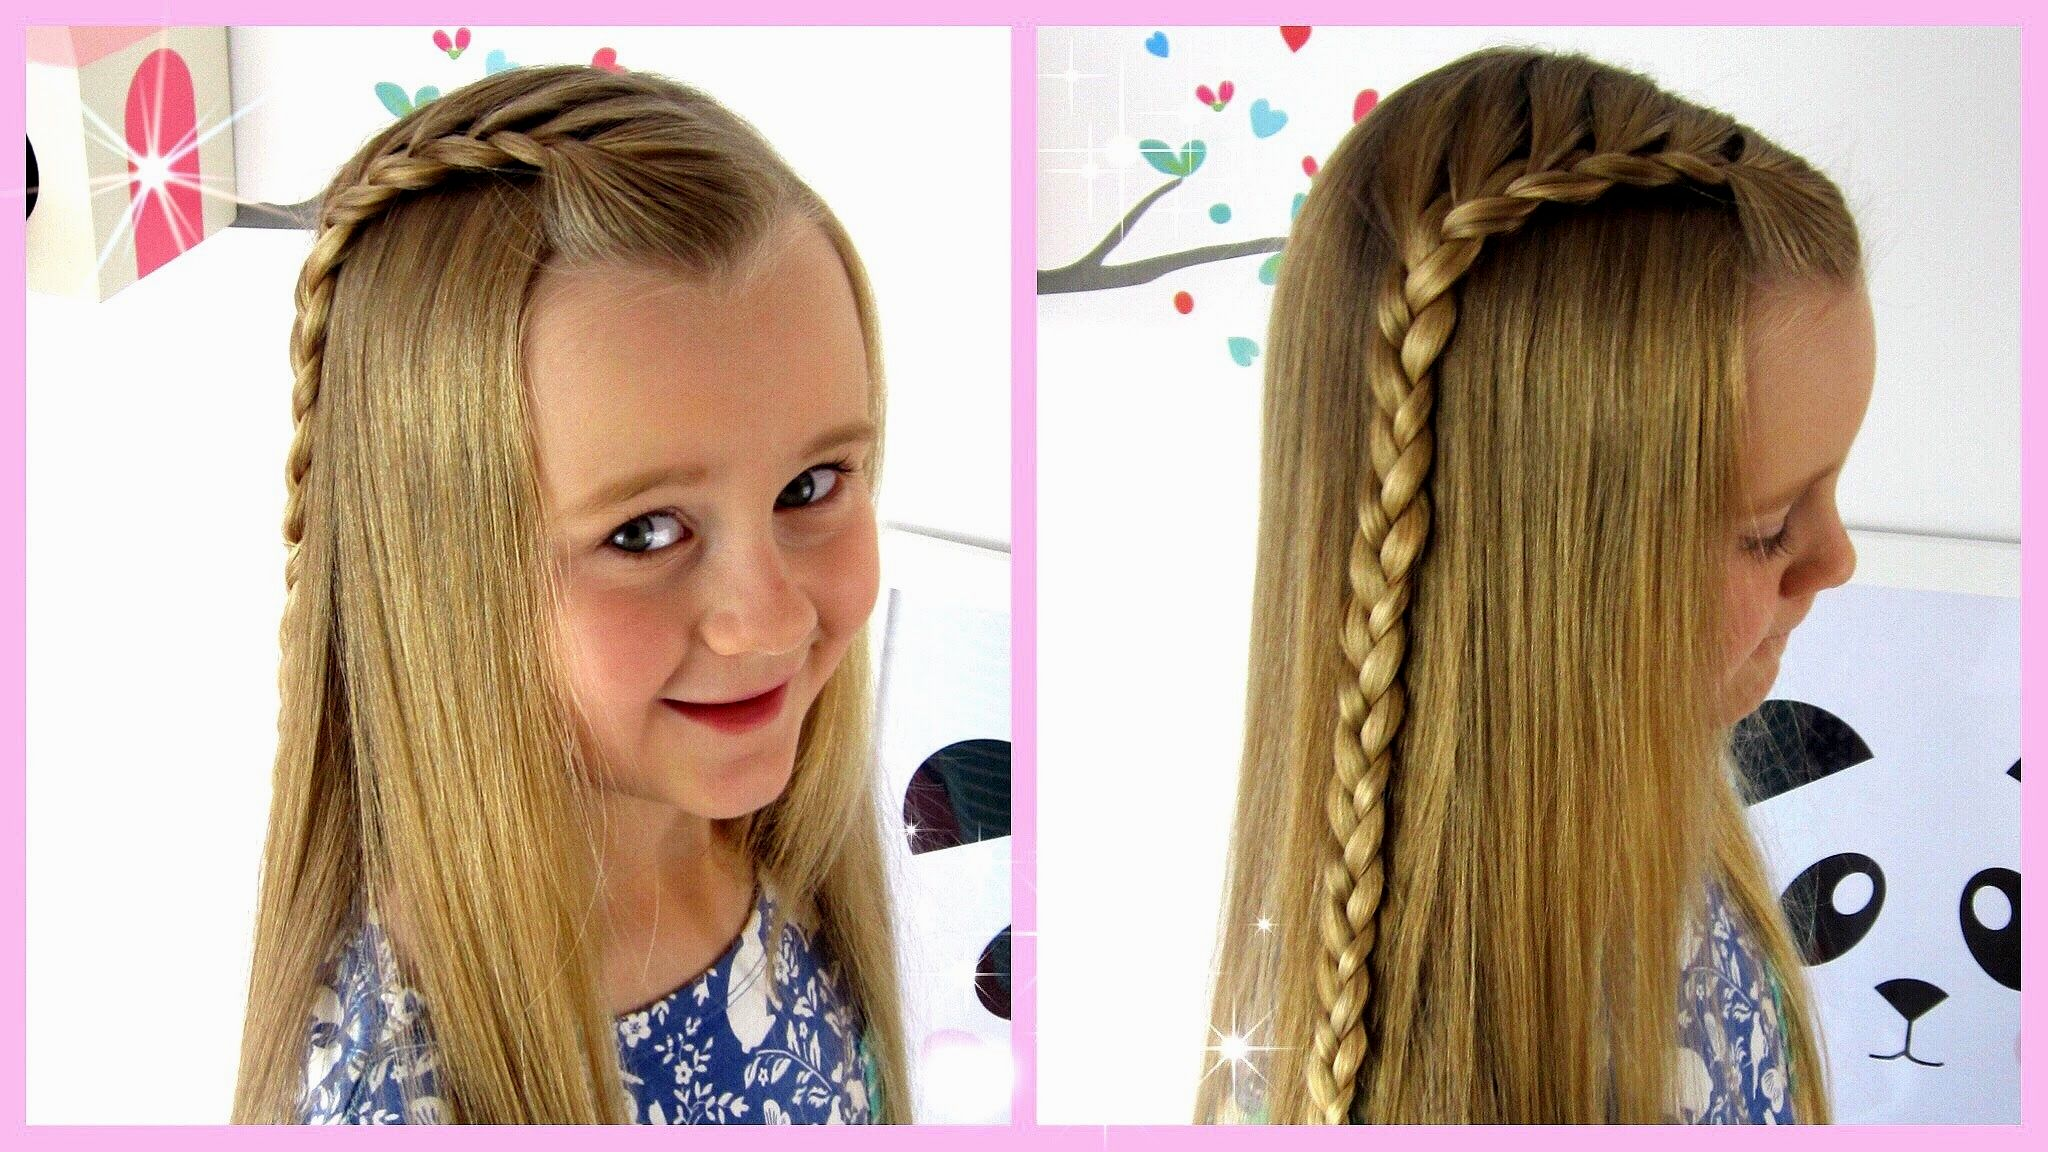 Fascinating baby hairstyles girl building layout-Best baby hairstyles girl collection